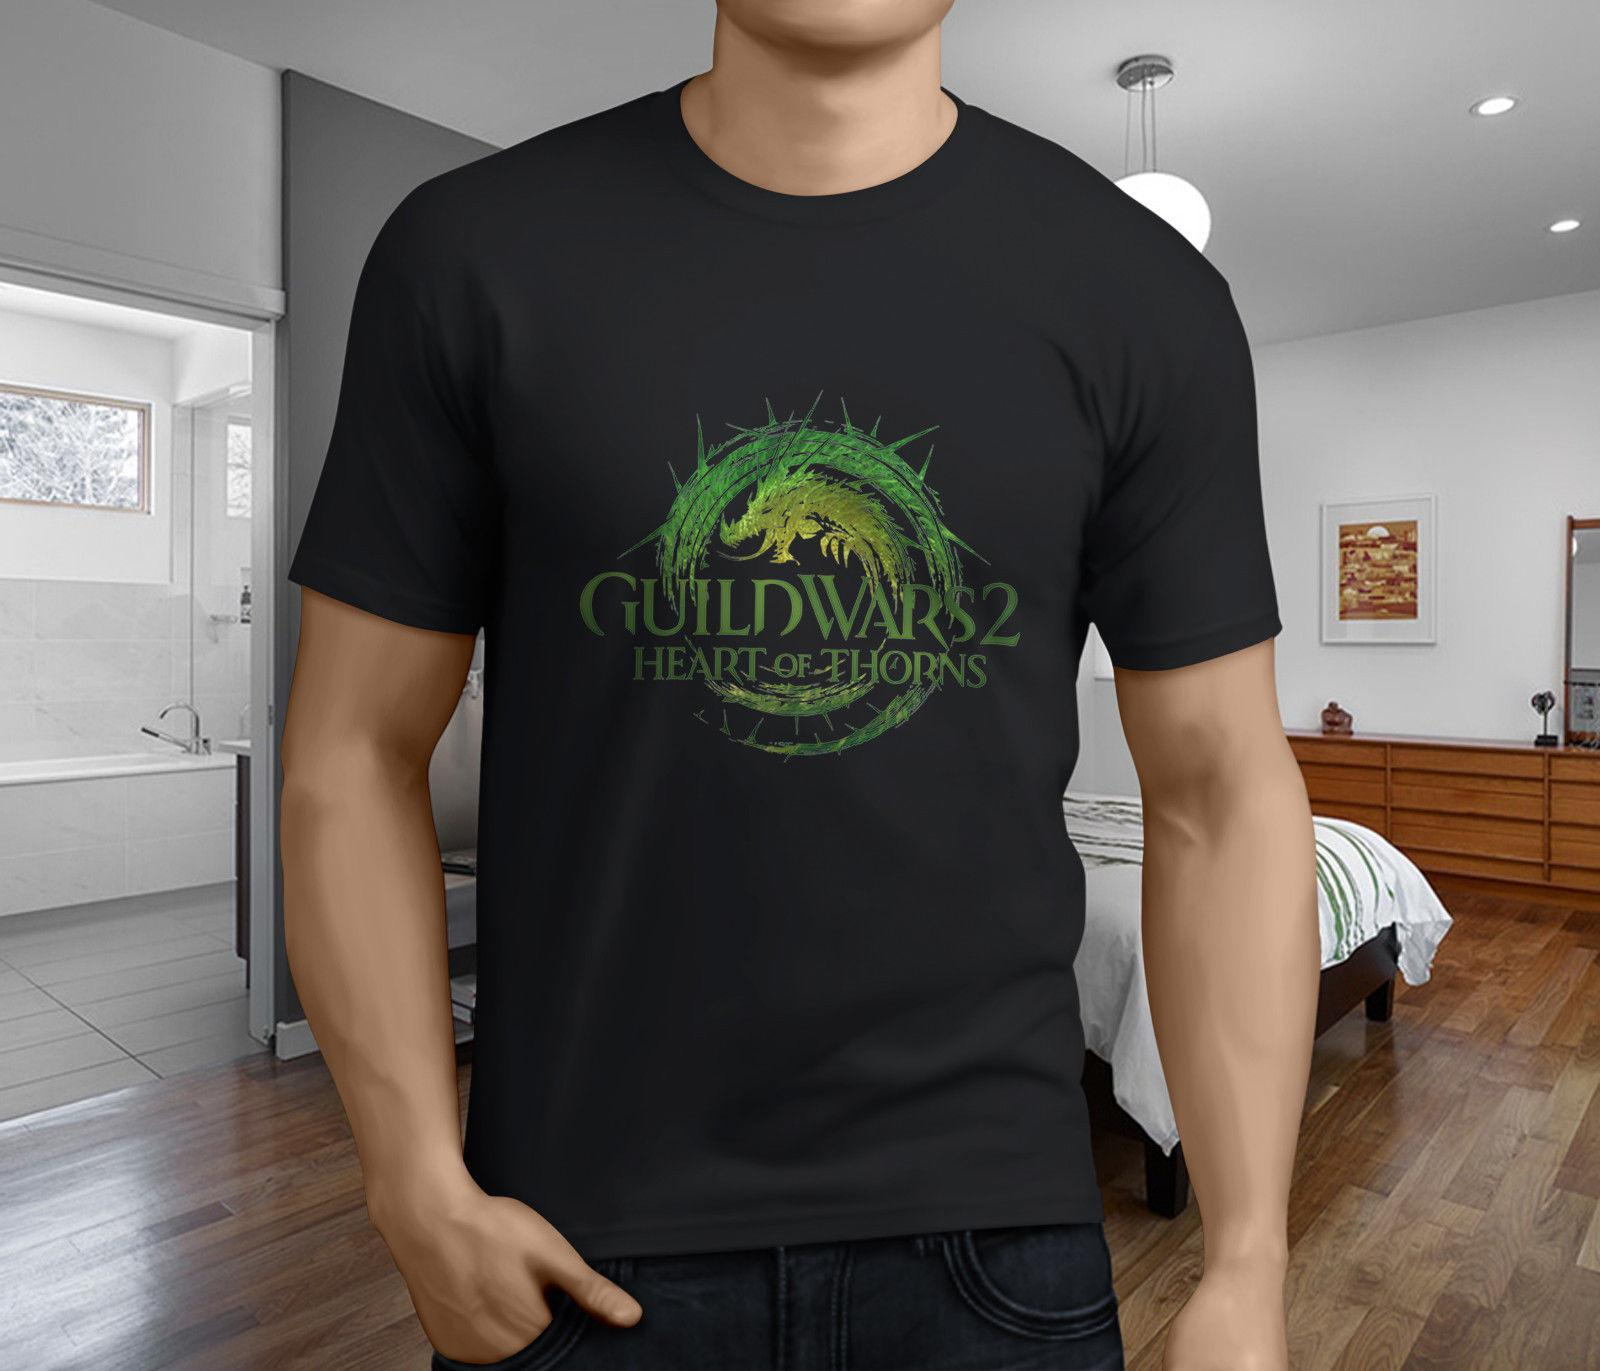 New Popular Guild Wars 2 Mens Black T-Shirt S-3XL 2018 New Short Sleeve Men  T Shirt 100% Cotton Family Top Tee